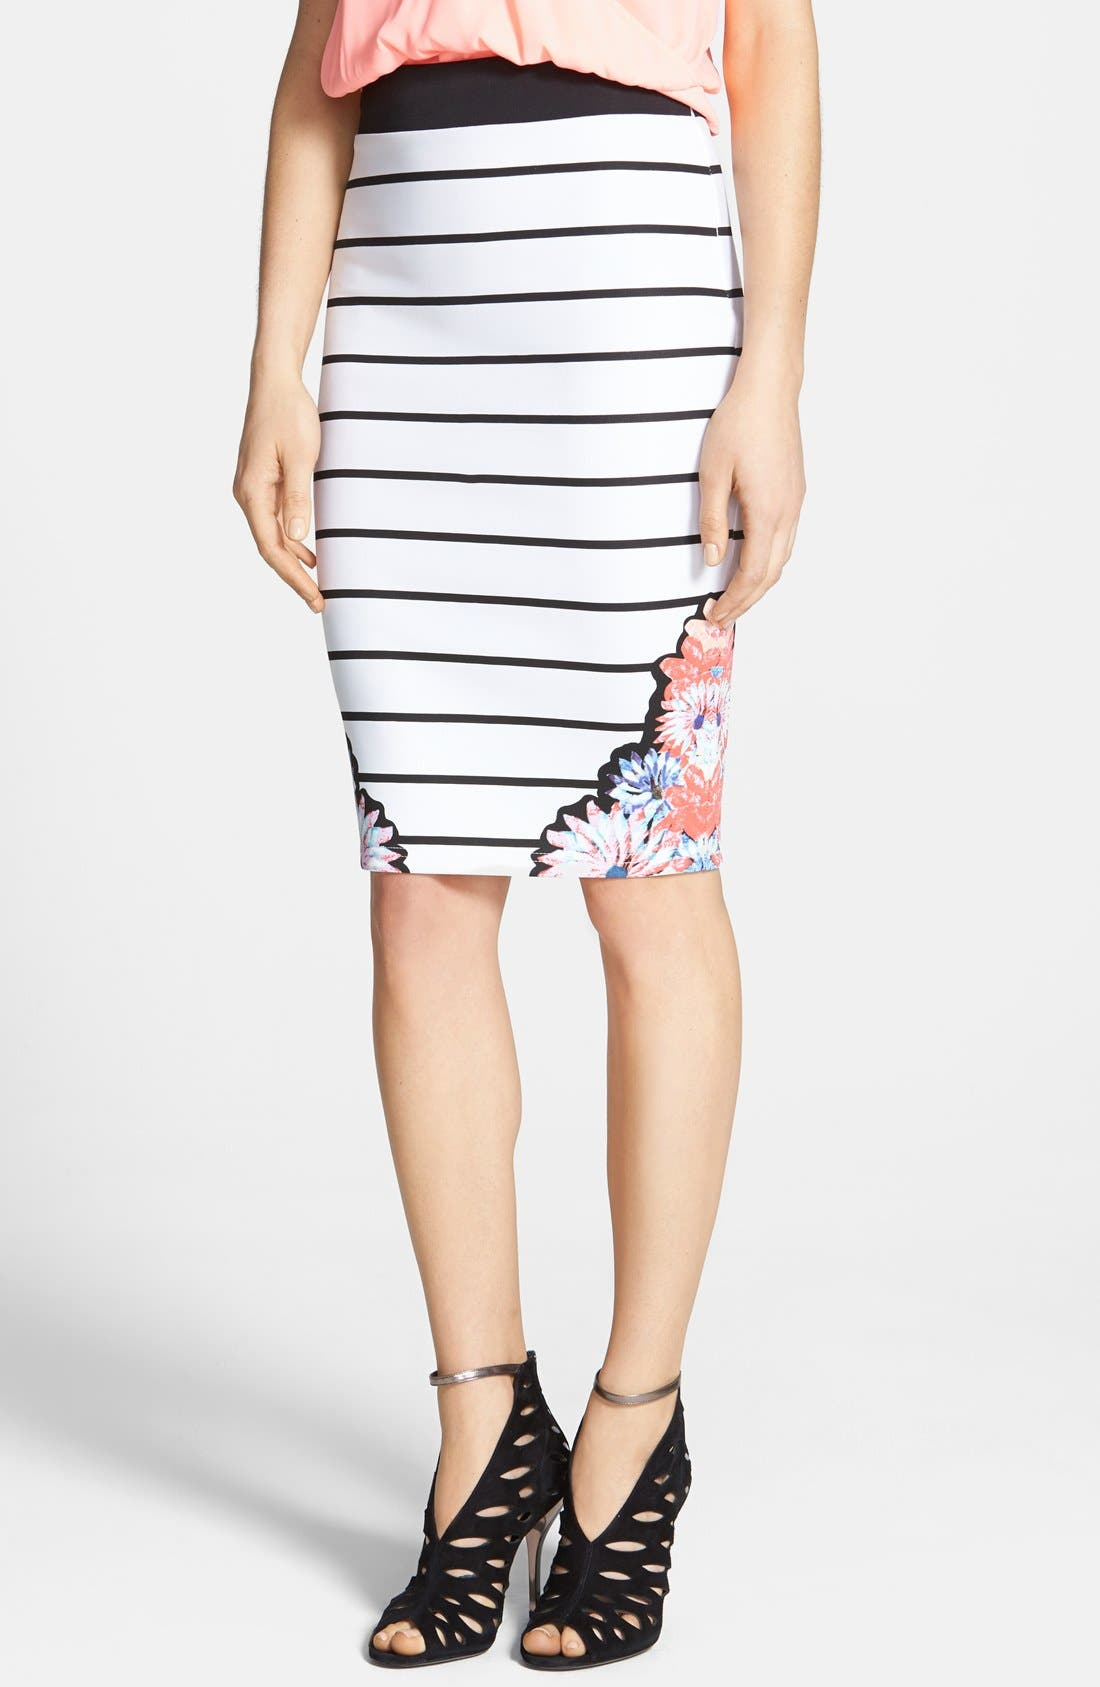 Alternate Image 1 Selected - MINKPINK 'Fade into Daisies' Print Stripe Tube Skirt